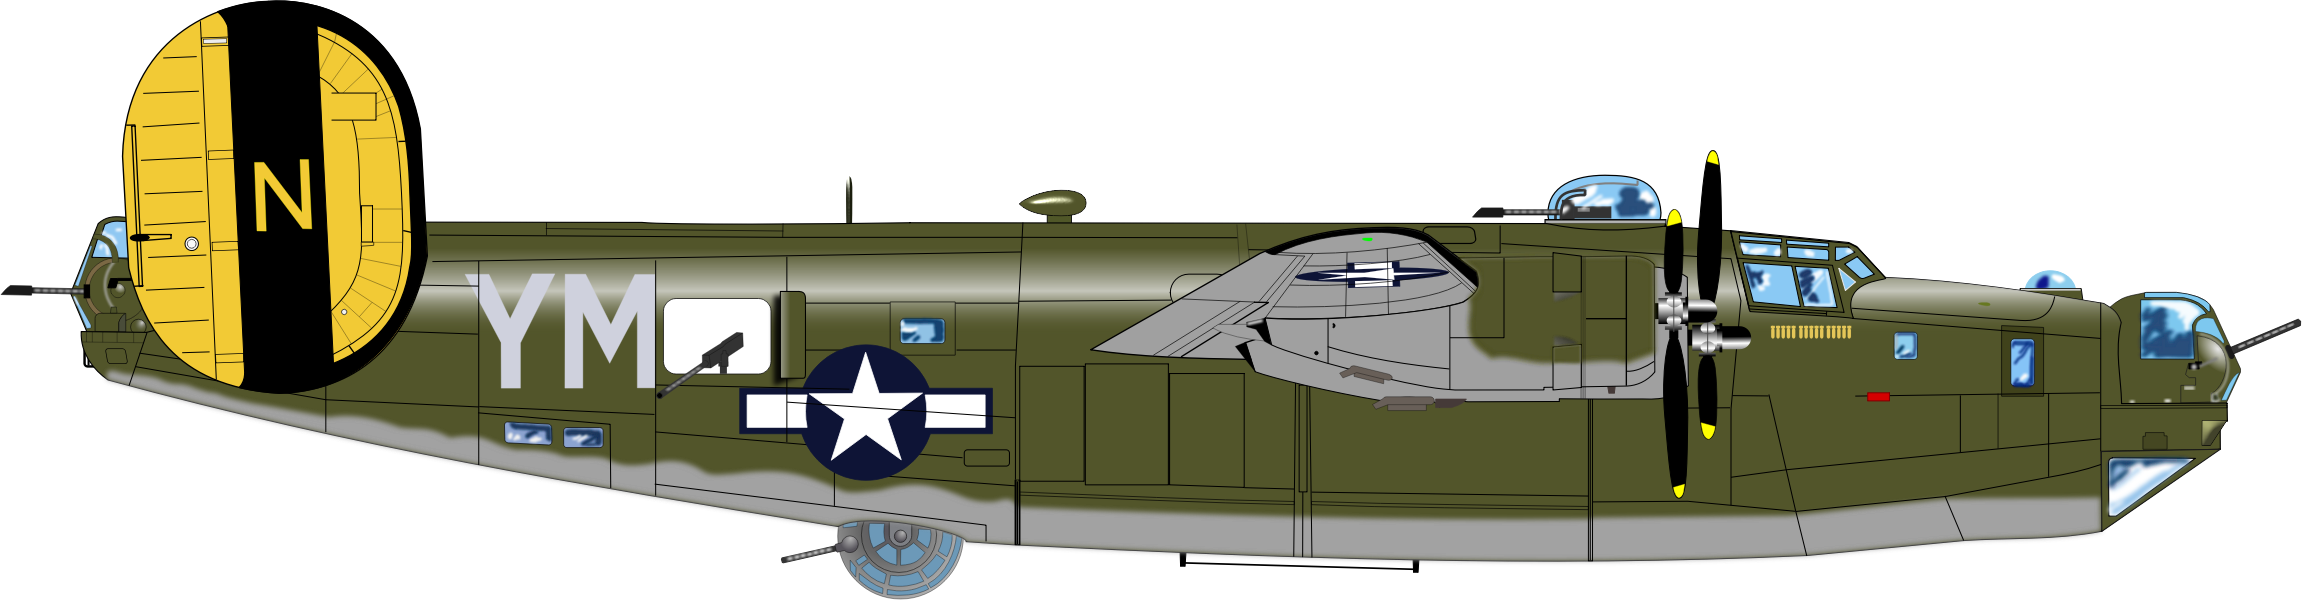 B-24 J BOMBER by charner1963